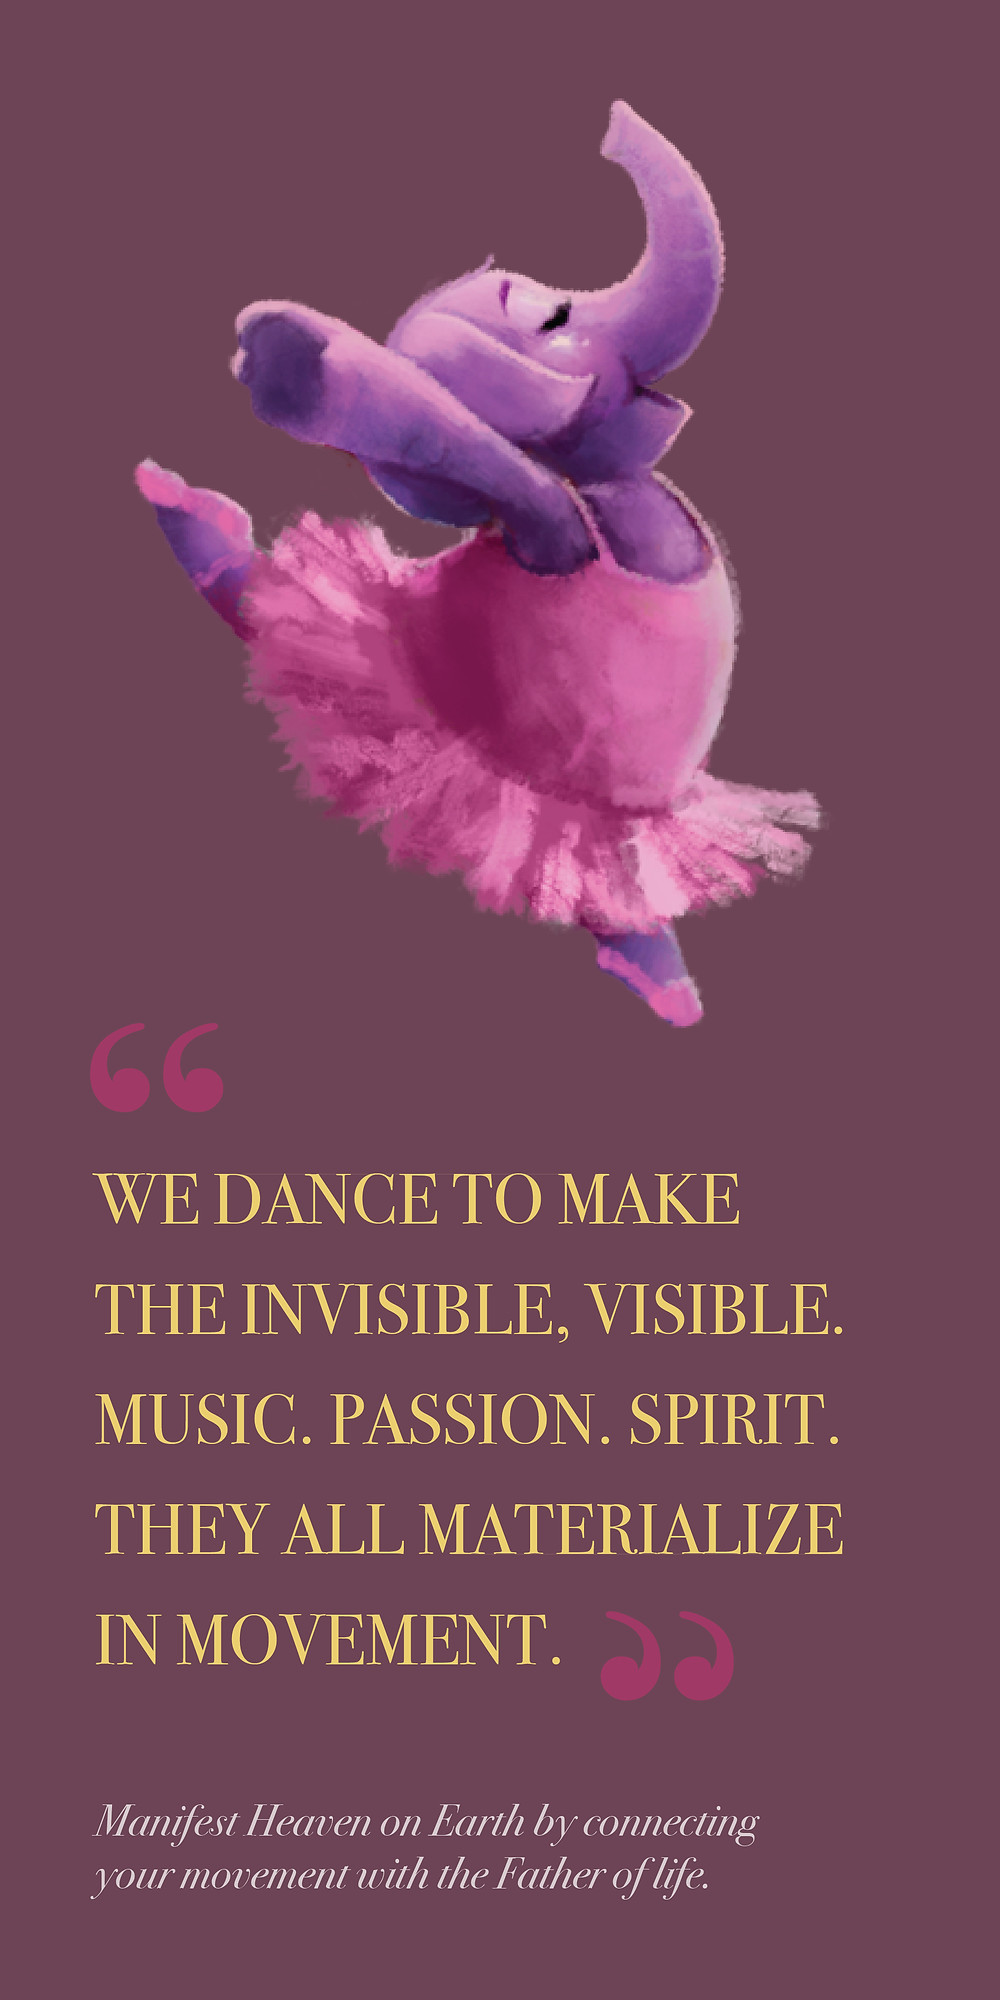 We dance to make the invisible, visible. Music. Passion. Spirit. They all materialize in movement.  Manifest Heaven on Earth by connecting your movement with the Father of life.